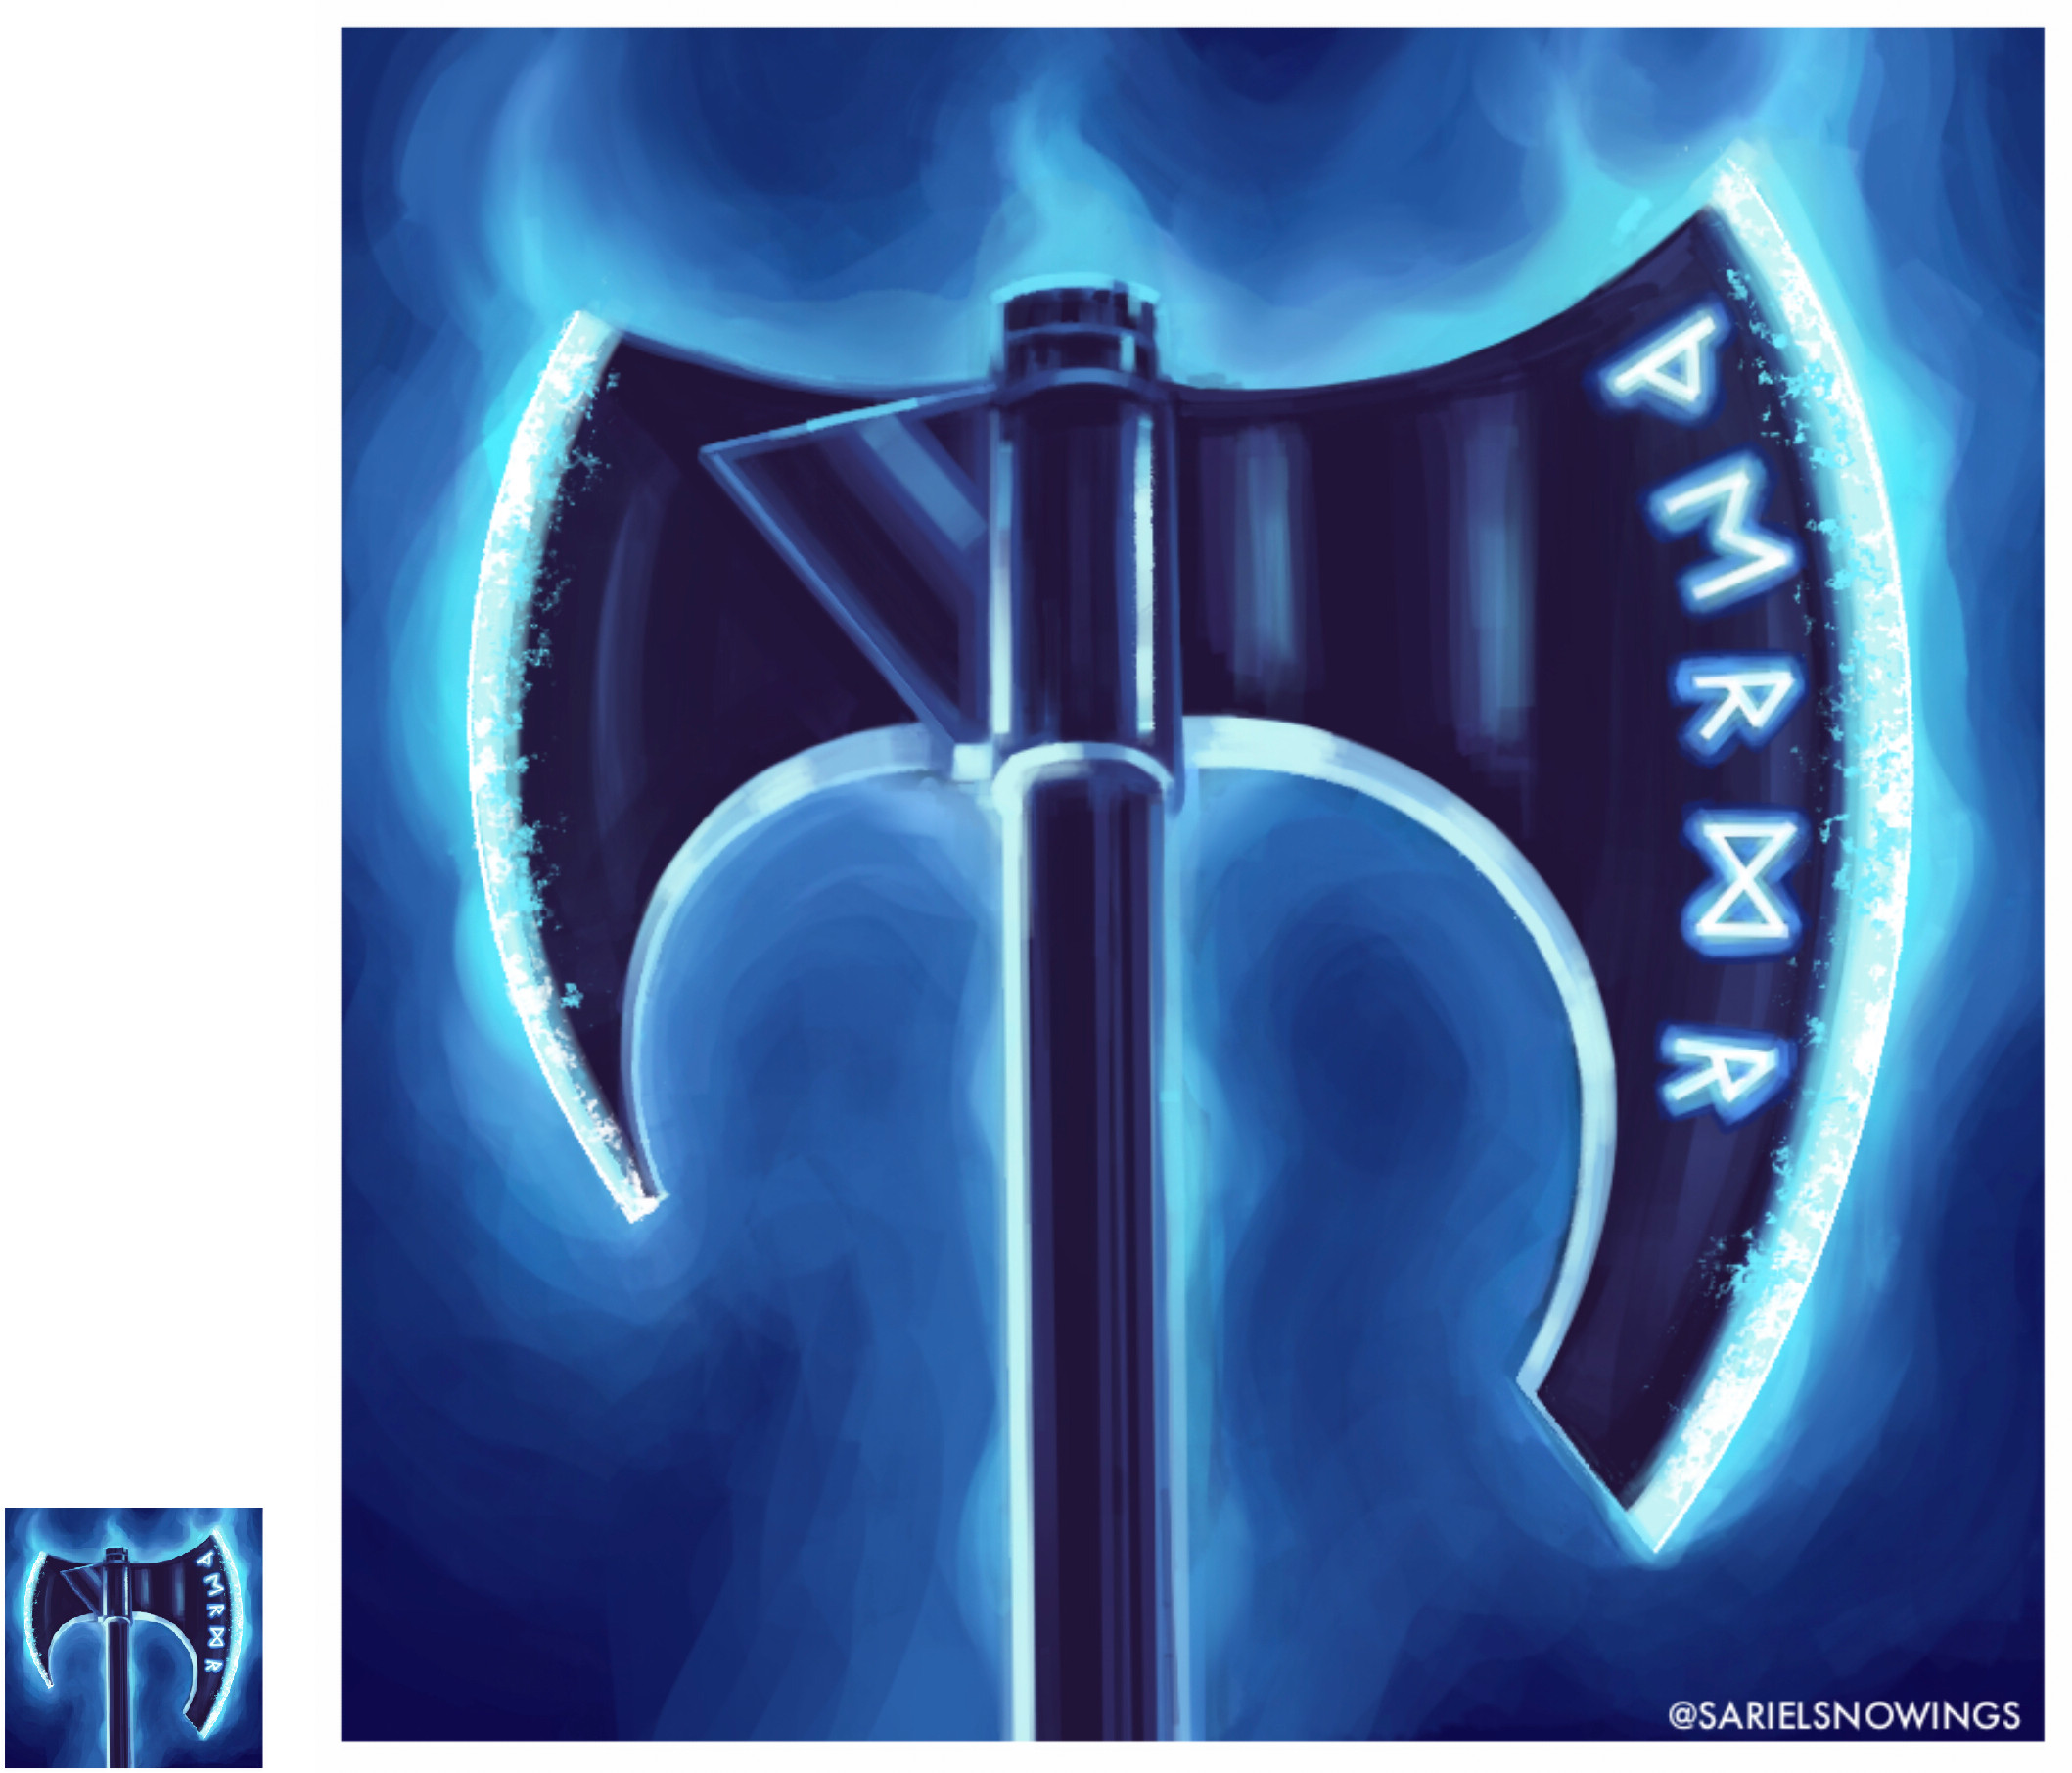 This is one of my favourite weapon icons I've made, I really like the runes against the dark metal and the cool steam flowing from the blades representing the ice powers of this axe.